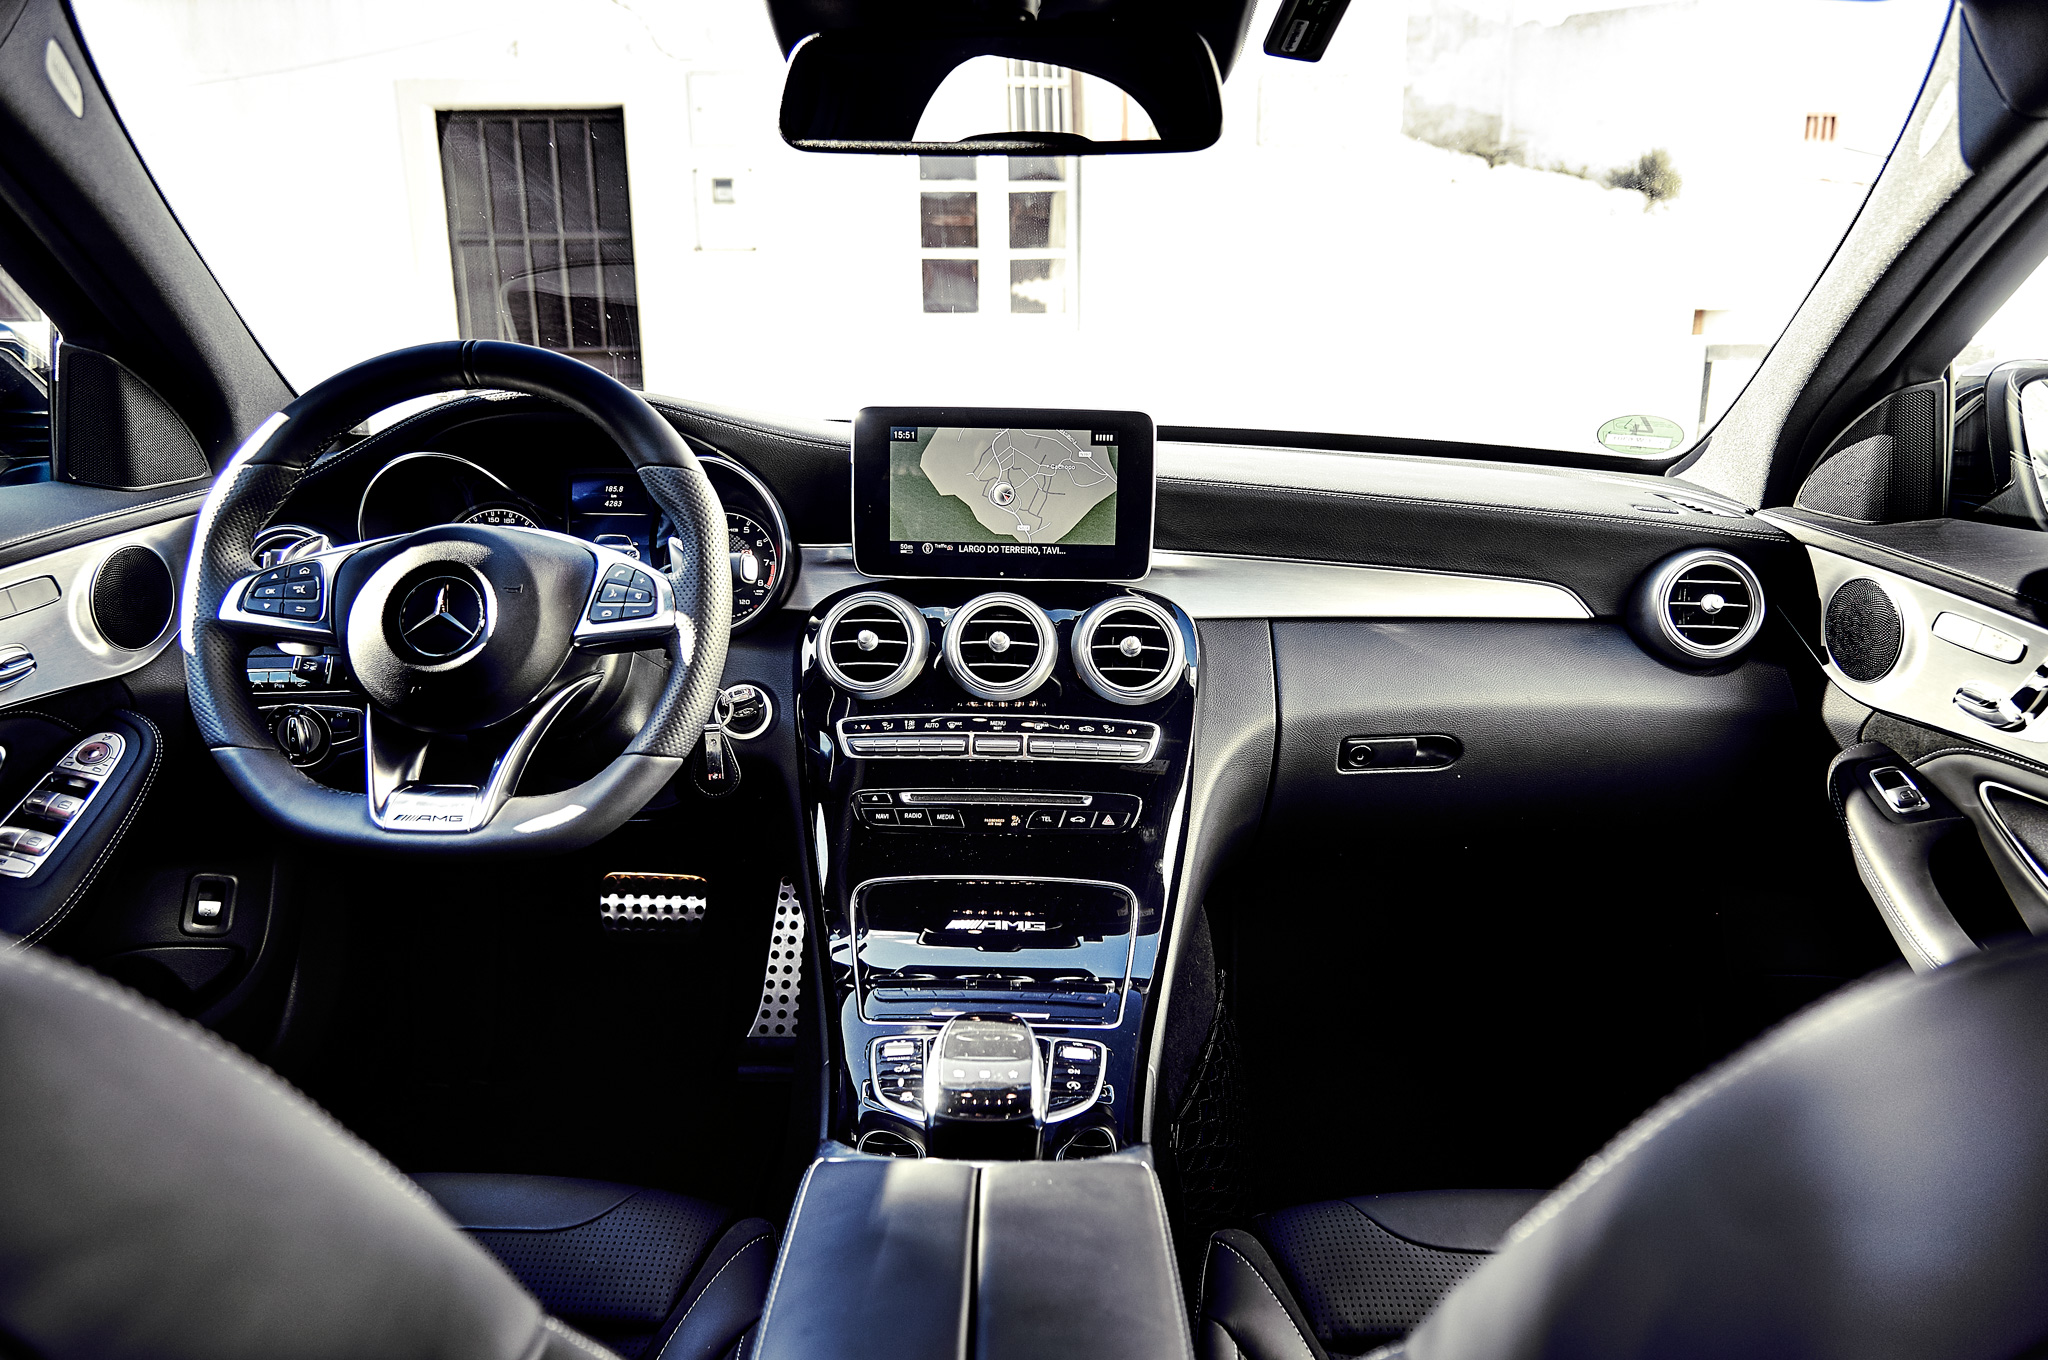 The C63's cockpit is more refined than the M3's, a trait that carries over to the entire driving experience.